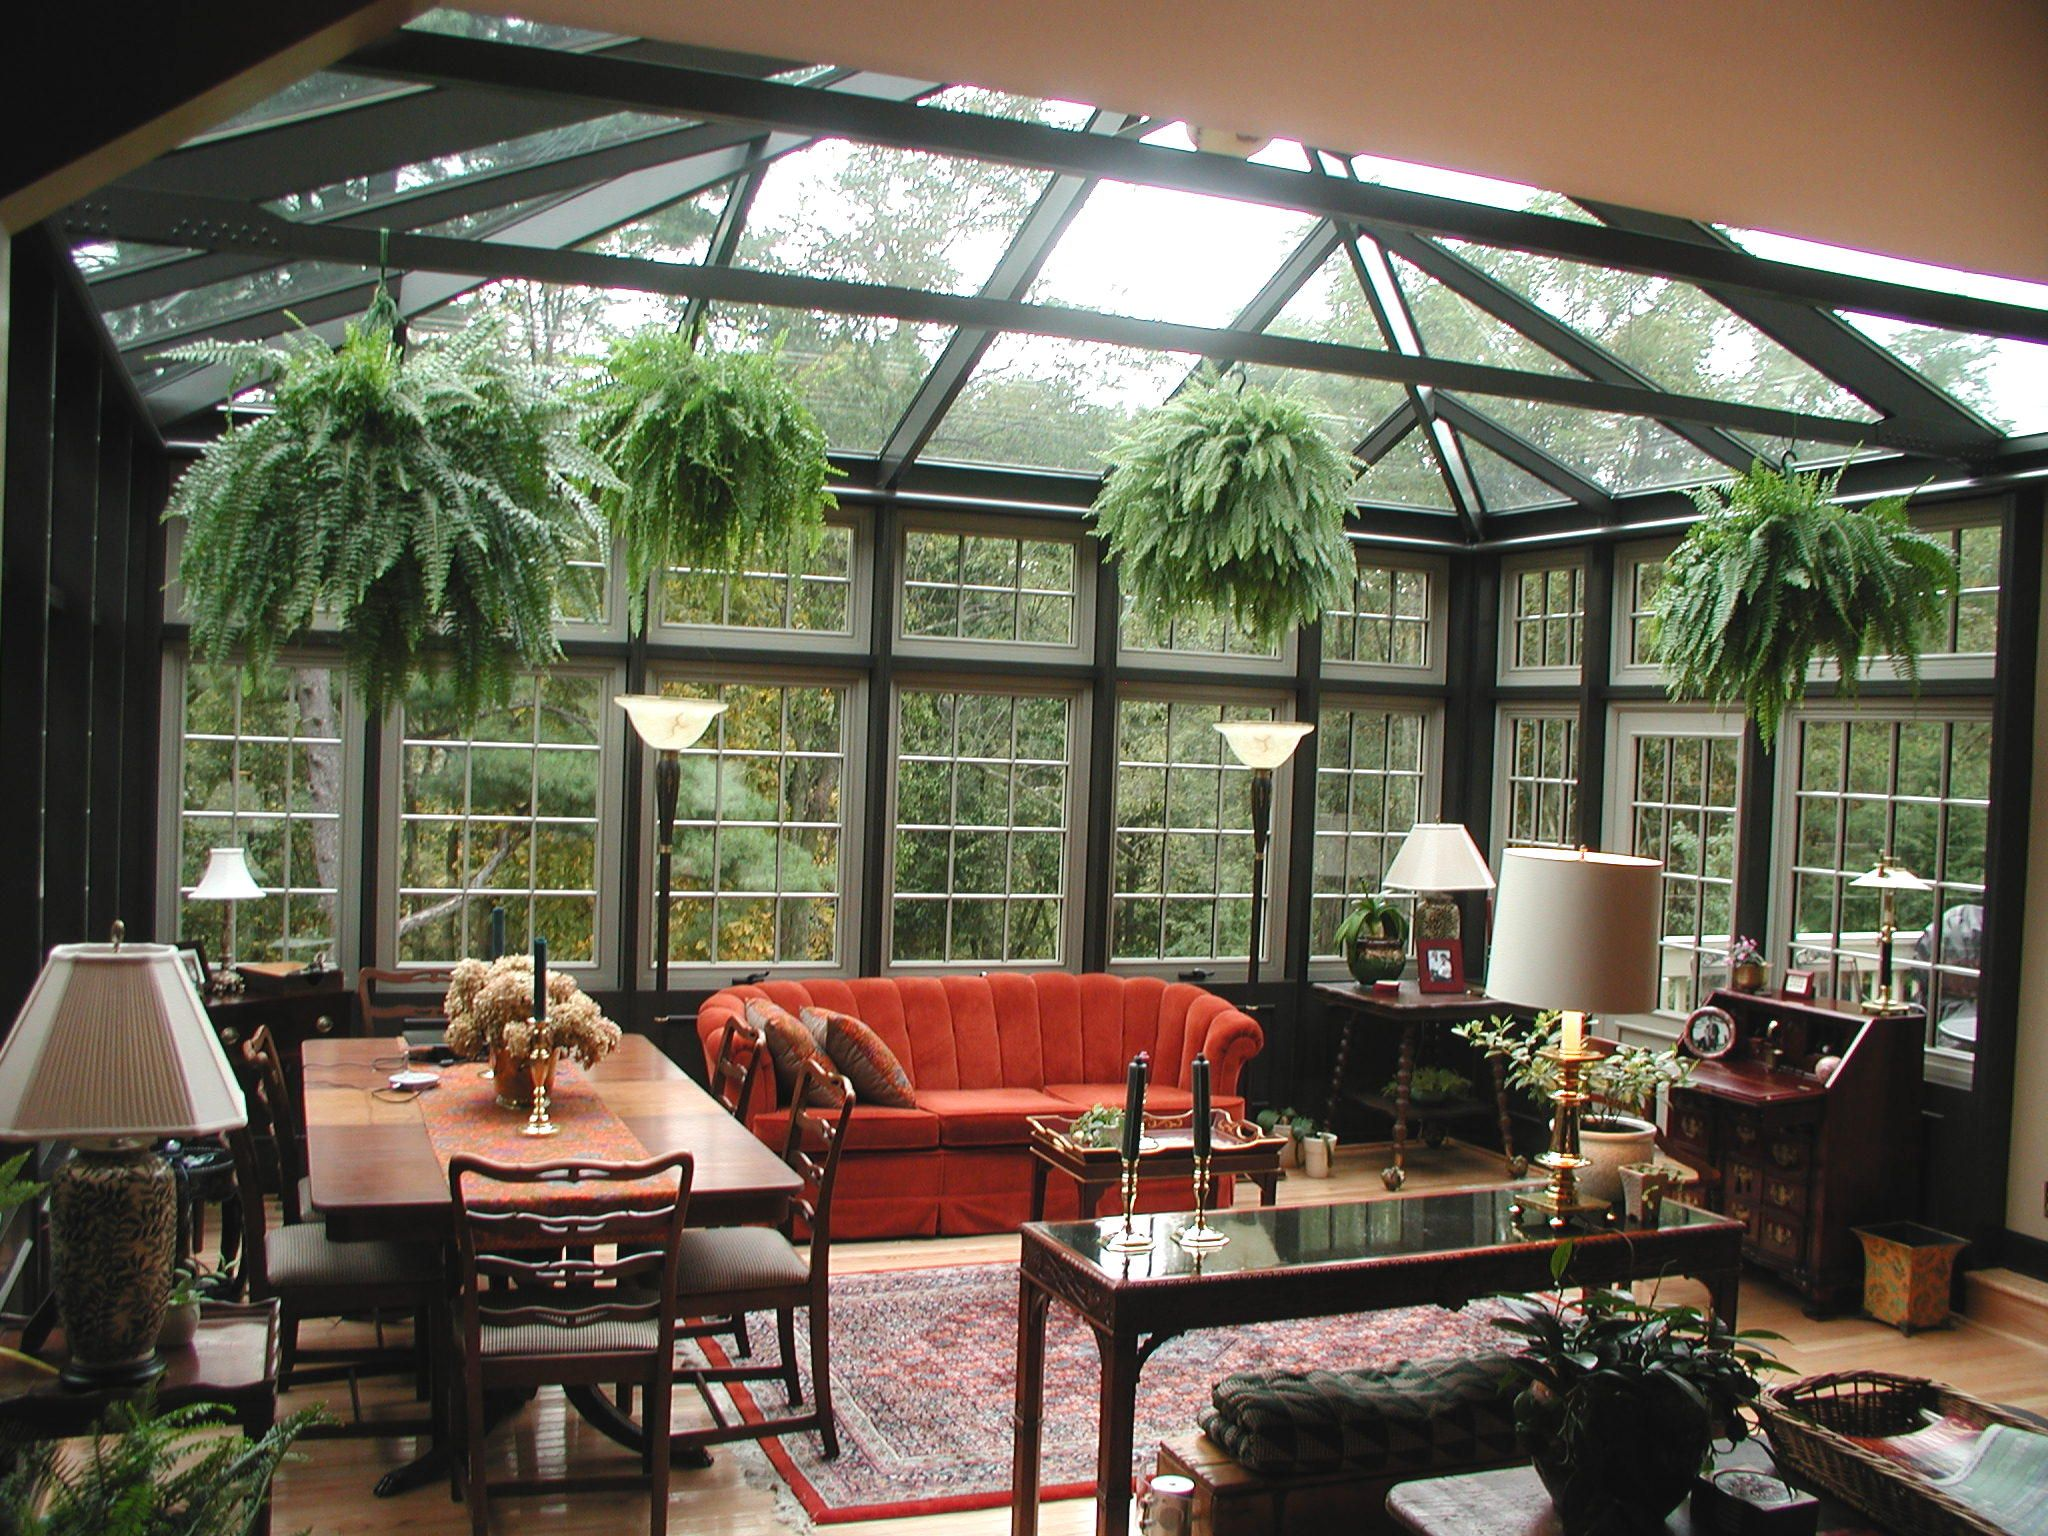 Sun Room Best 20 Sun Room Ideas On Pinterest Sunroom Ideas Sunrooms And